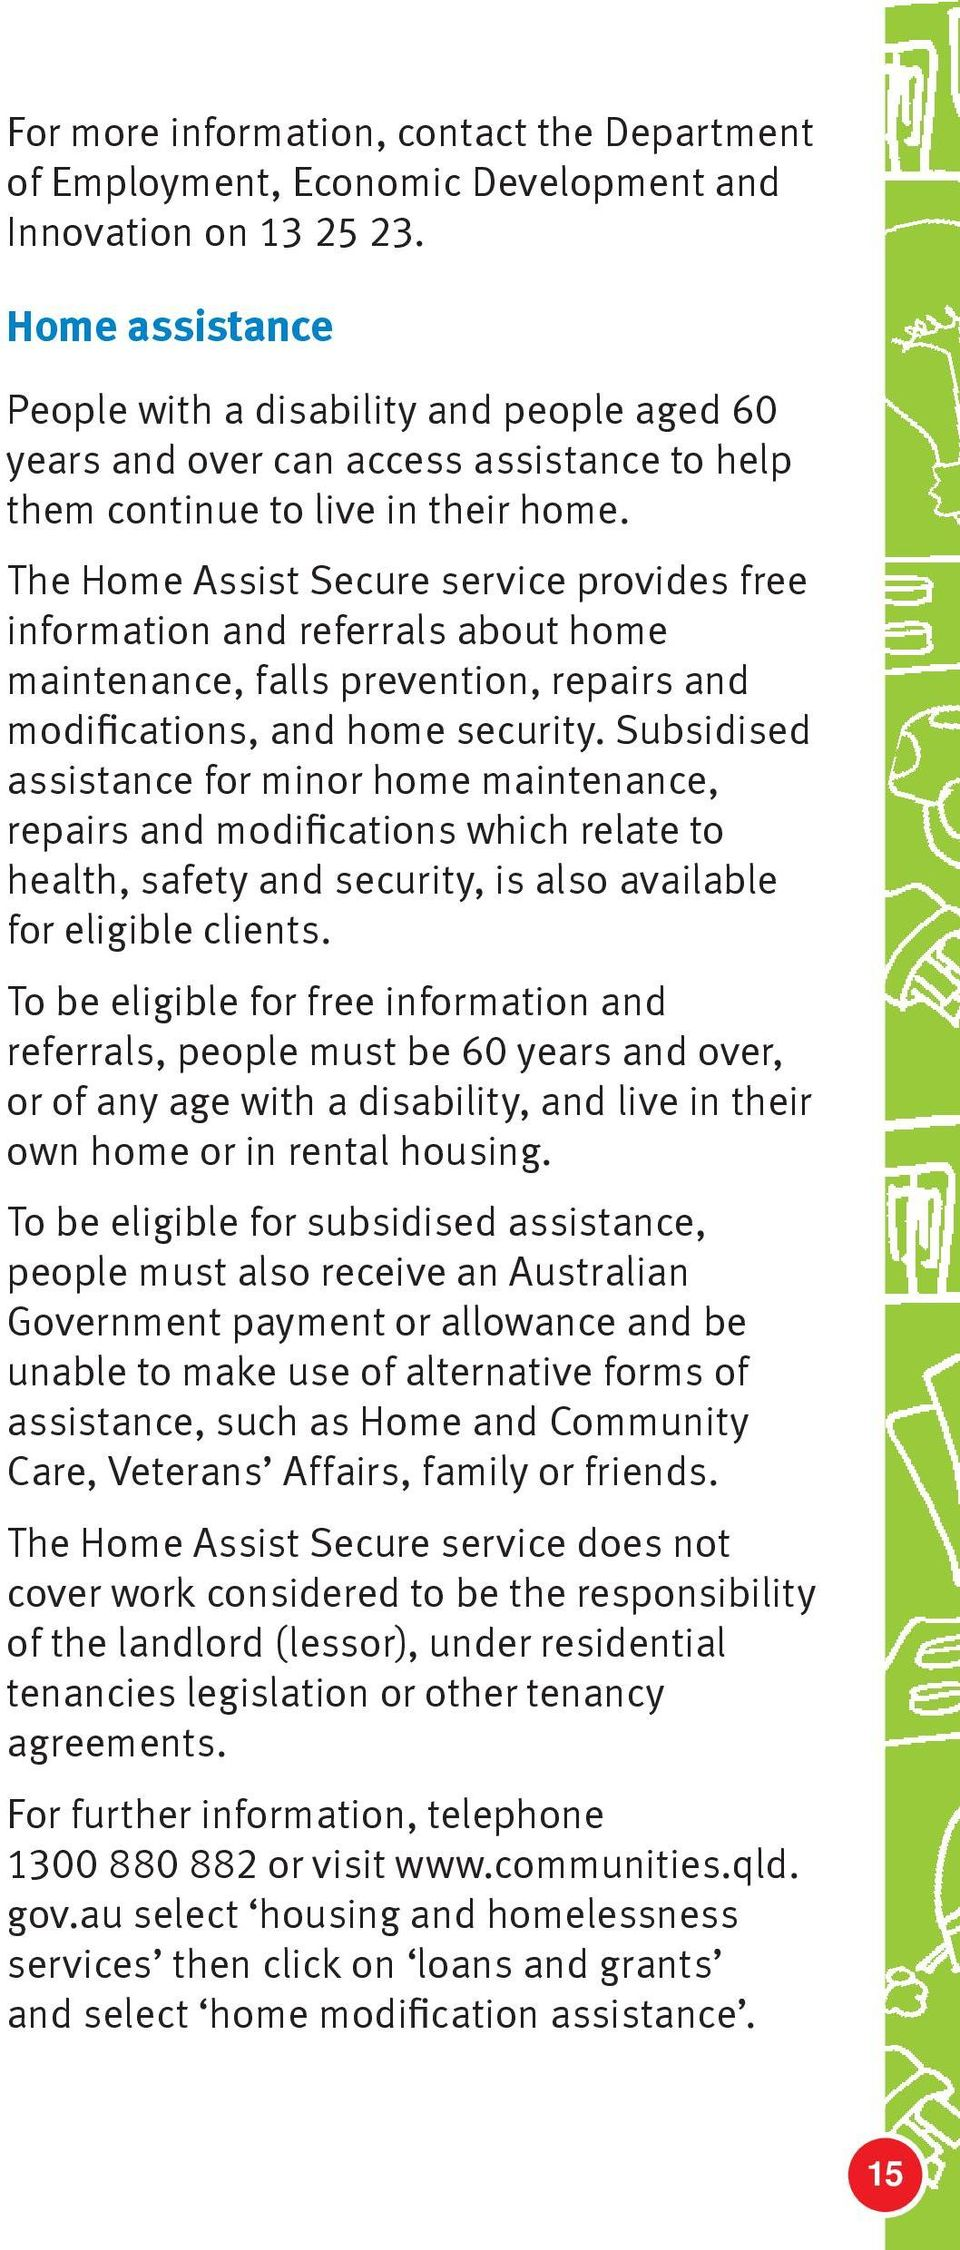 The Home Assist Secure service provides free information and referrals about home maintenance, falls prevention, repairs and modifications, and home security.